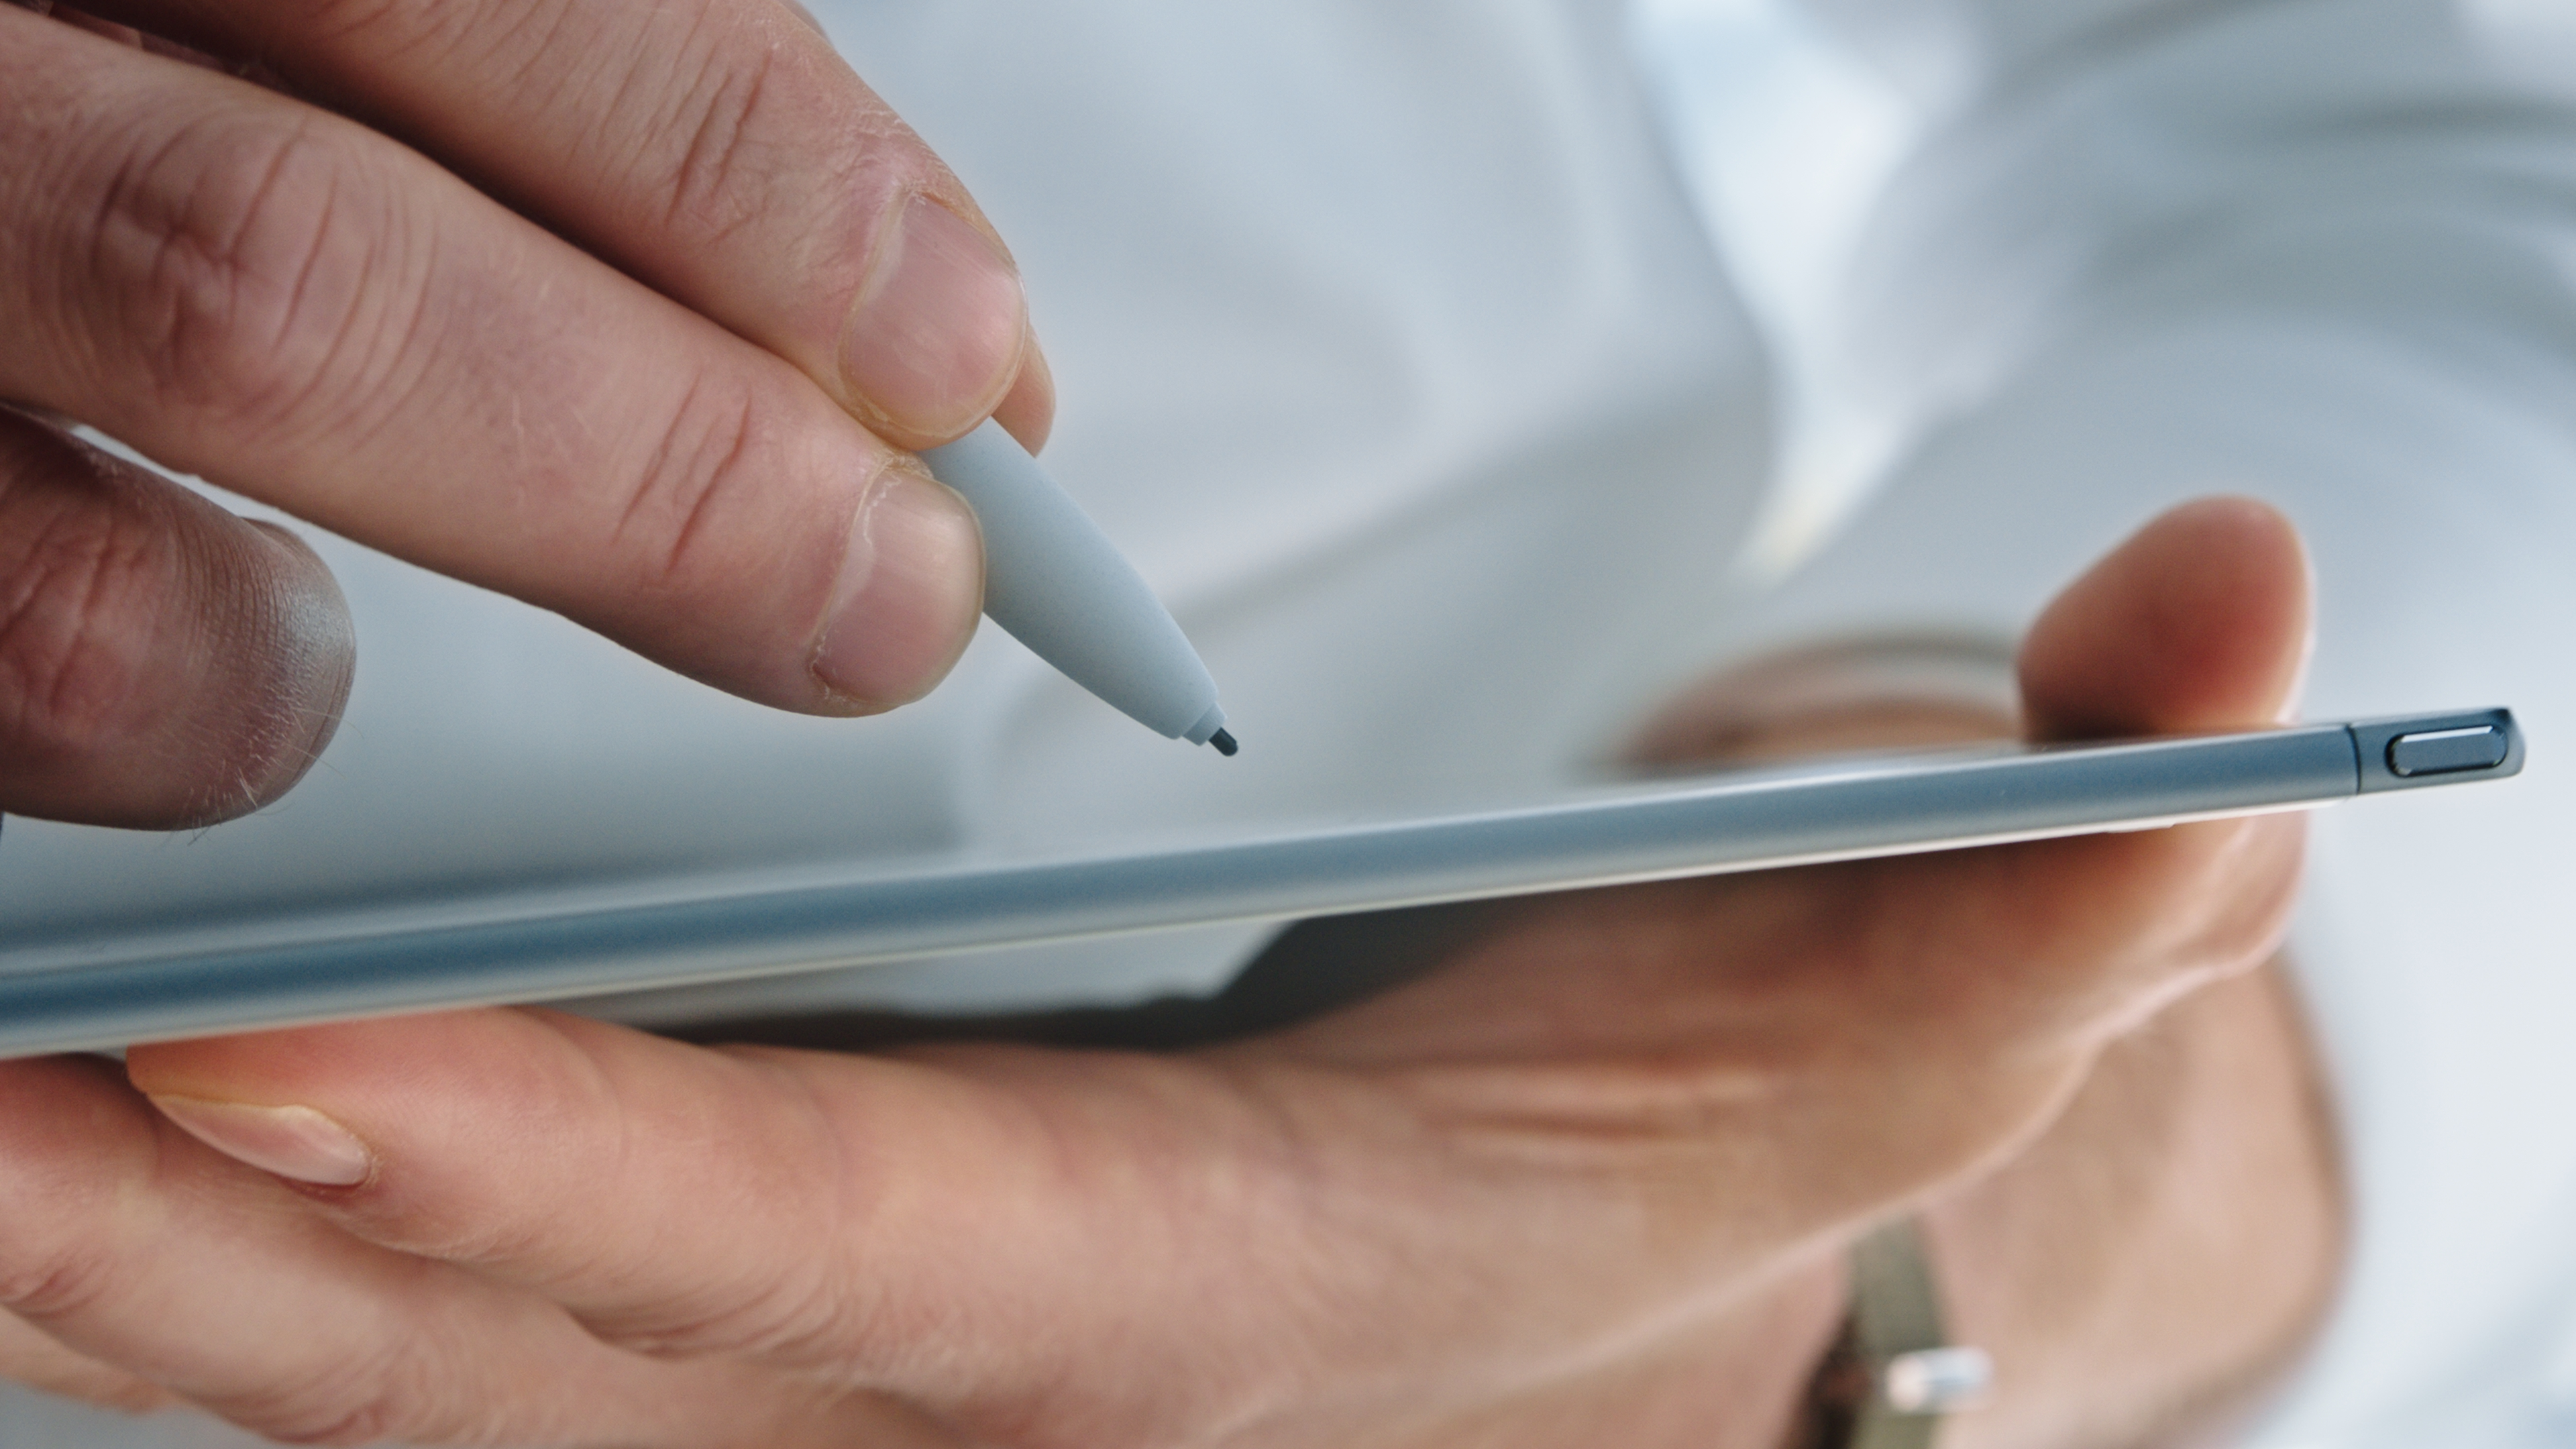 We take the reMarkable 2 tablet on a hand-written creative journey